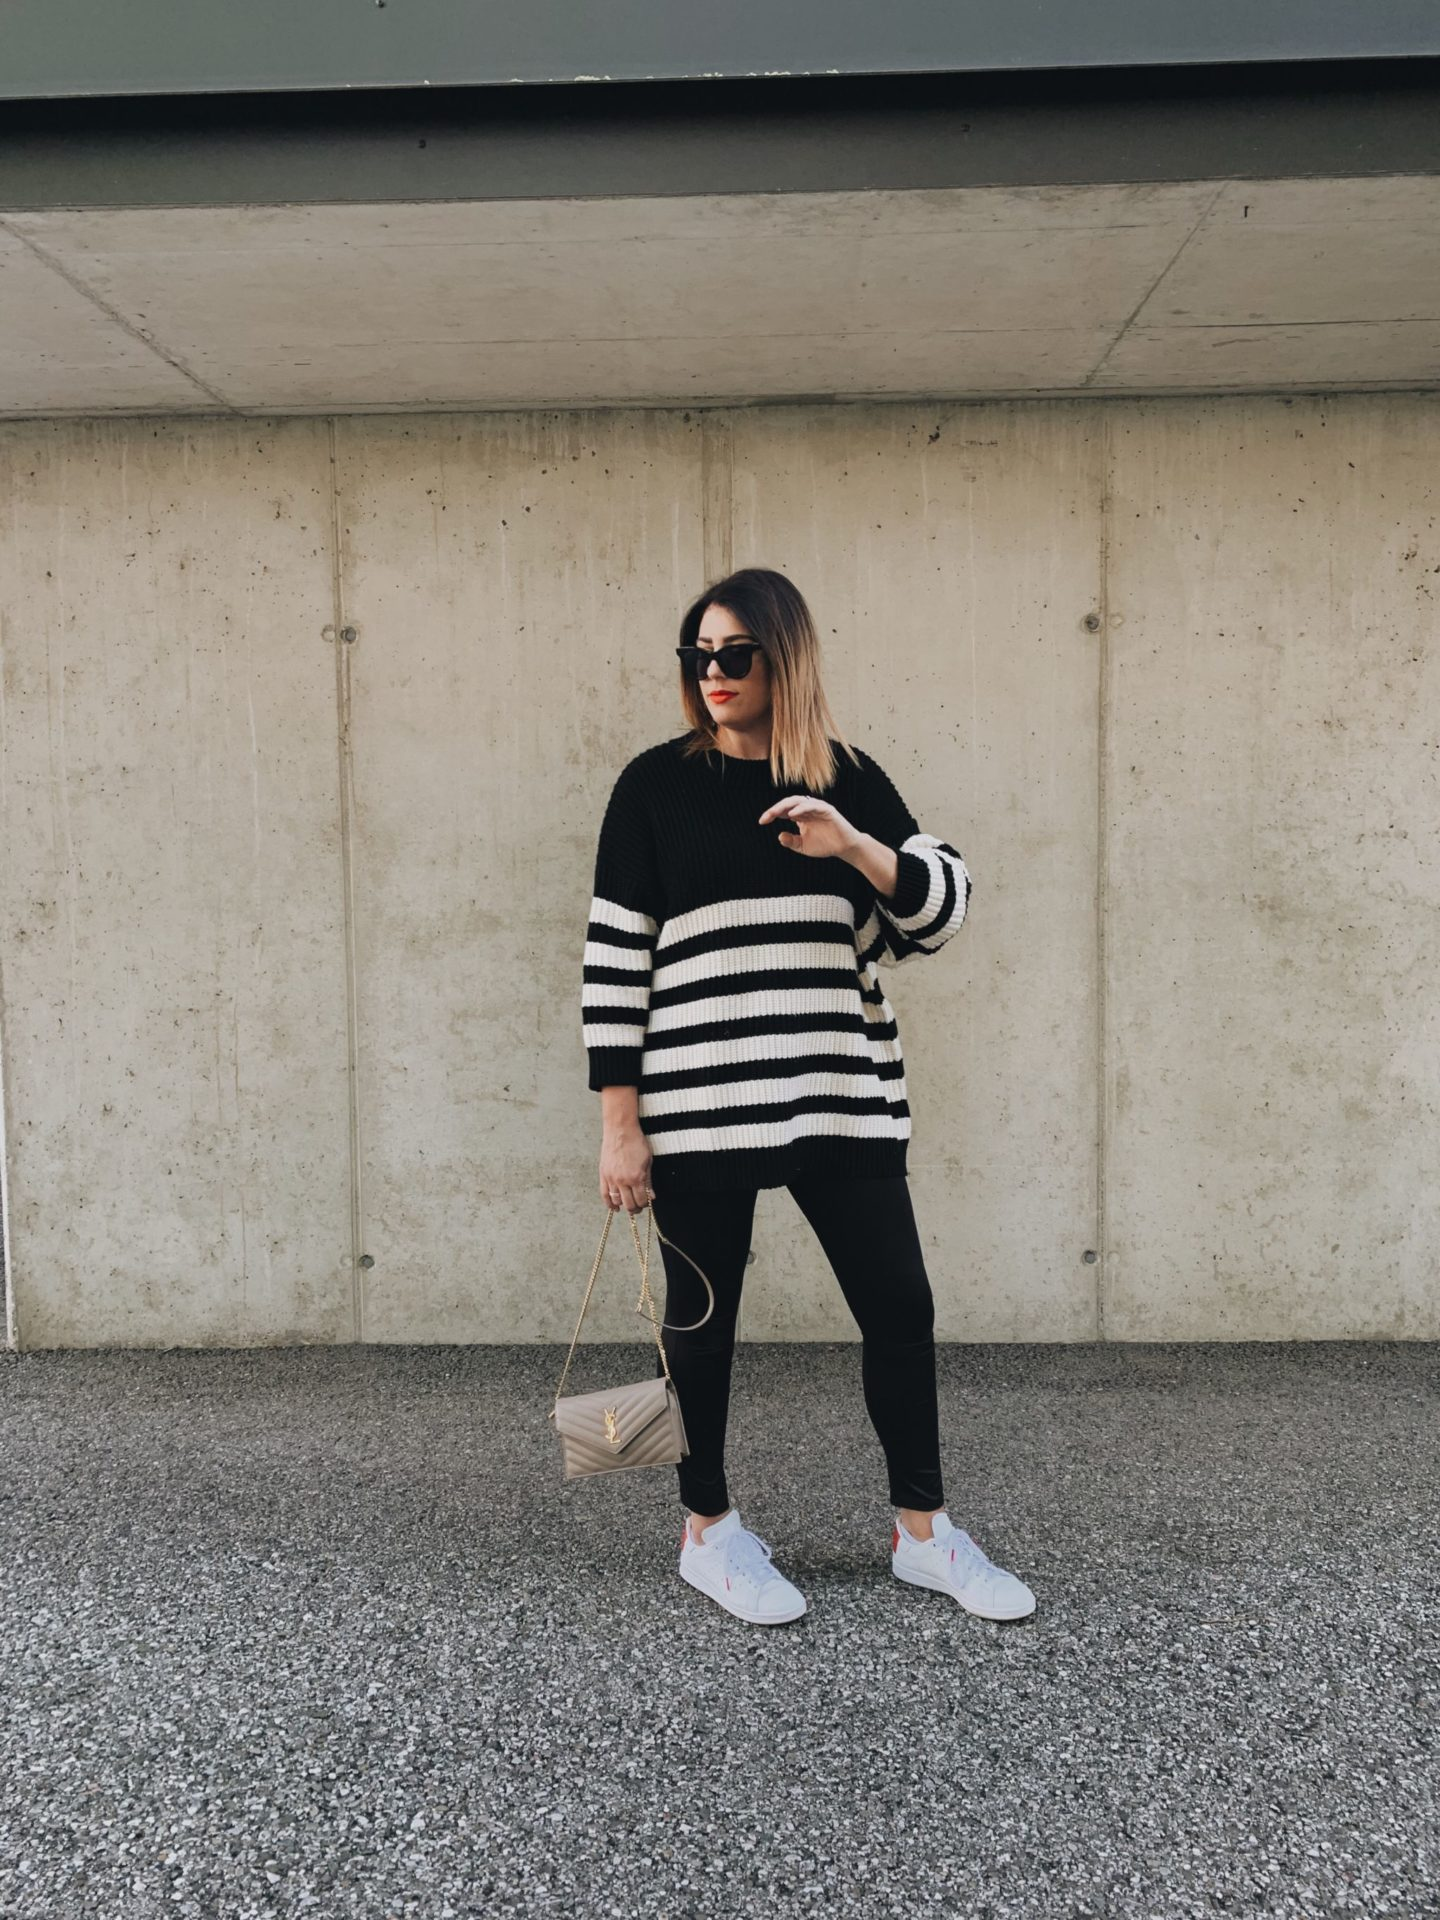 Outfit: First days of Knitwear mumandthefashioncircus